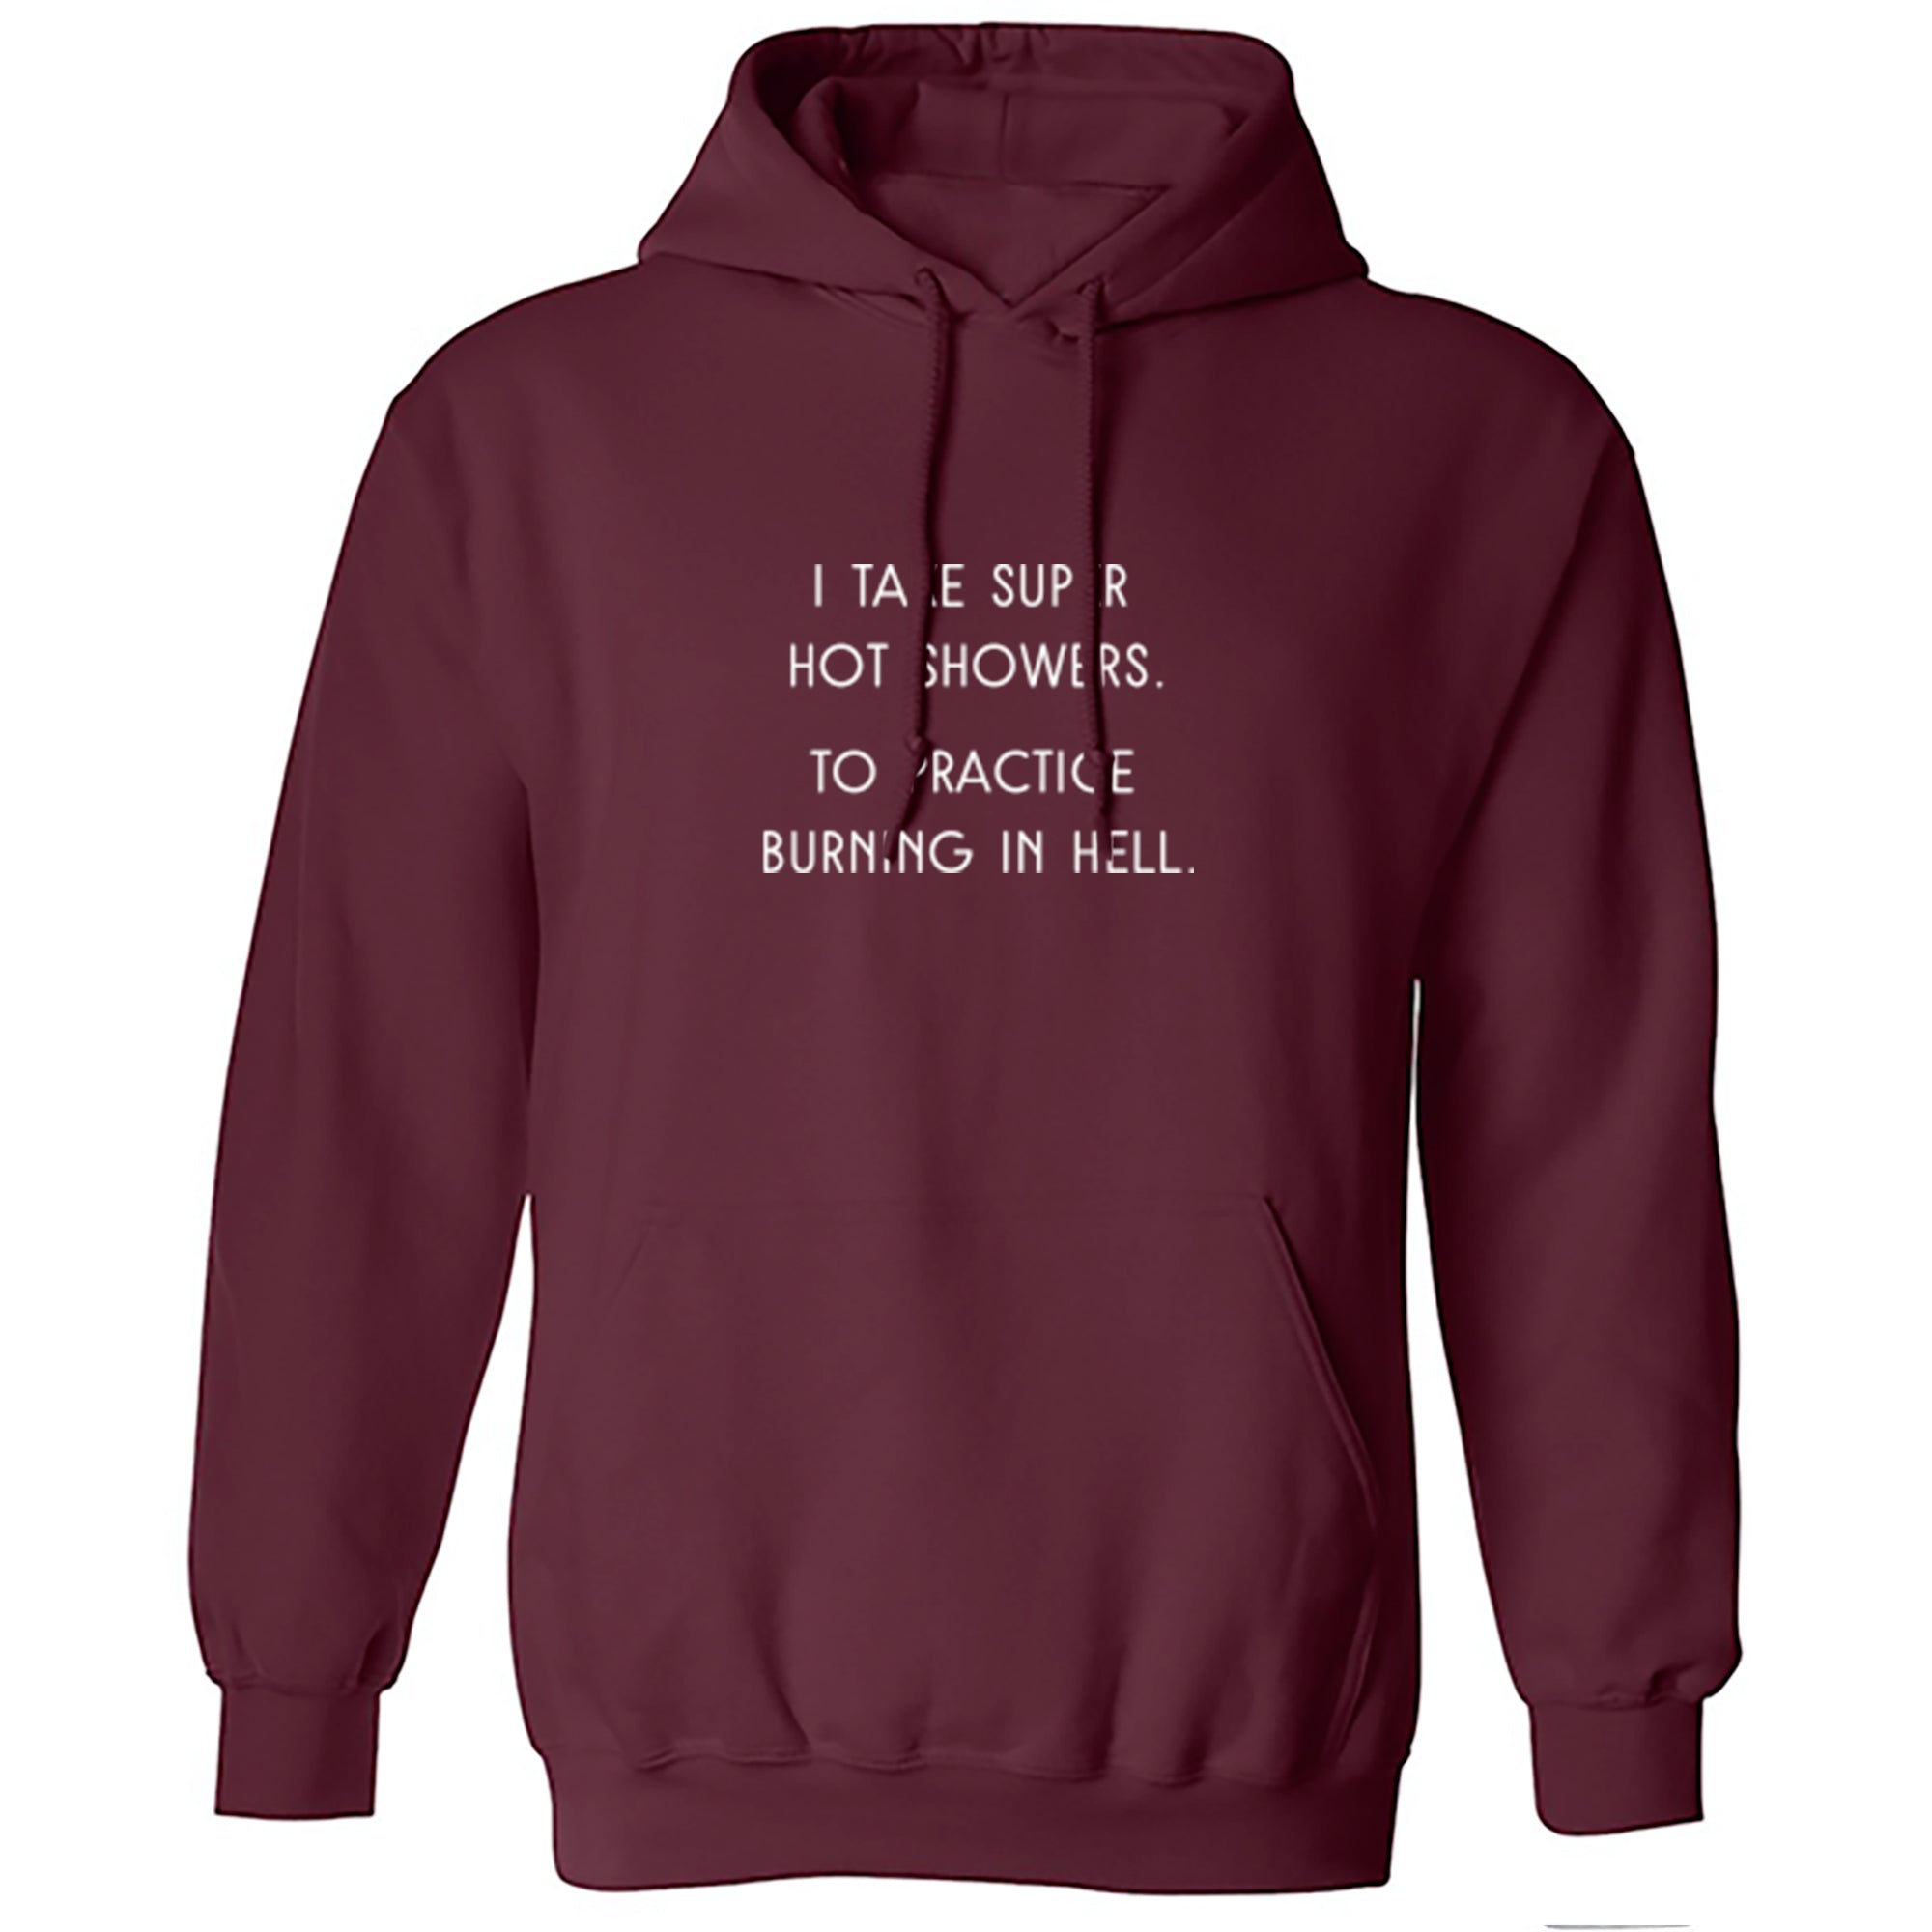 I Take Super Hot Showers. To Practice Burning In Hell. Unisex Hoodie S1121 - Illustrated Identity Ltd.